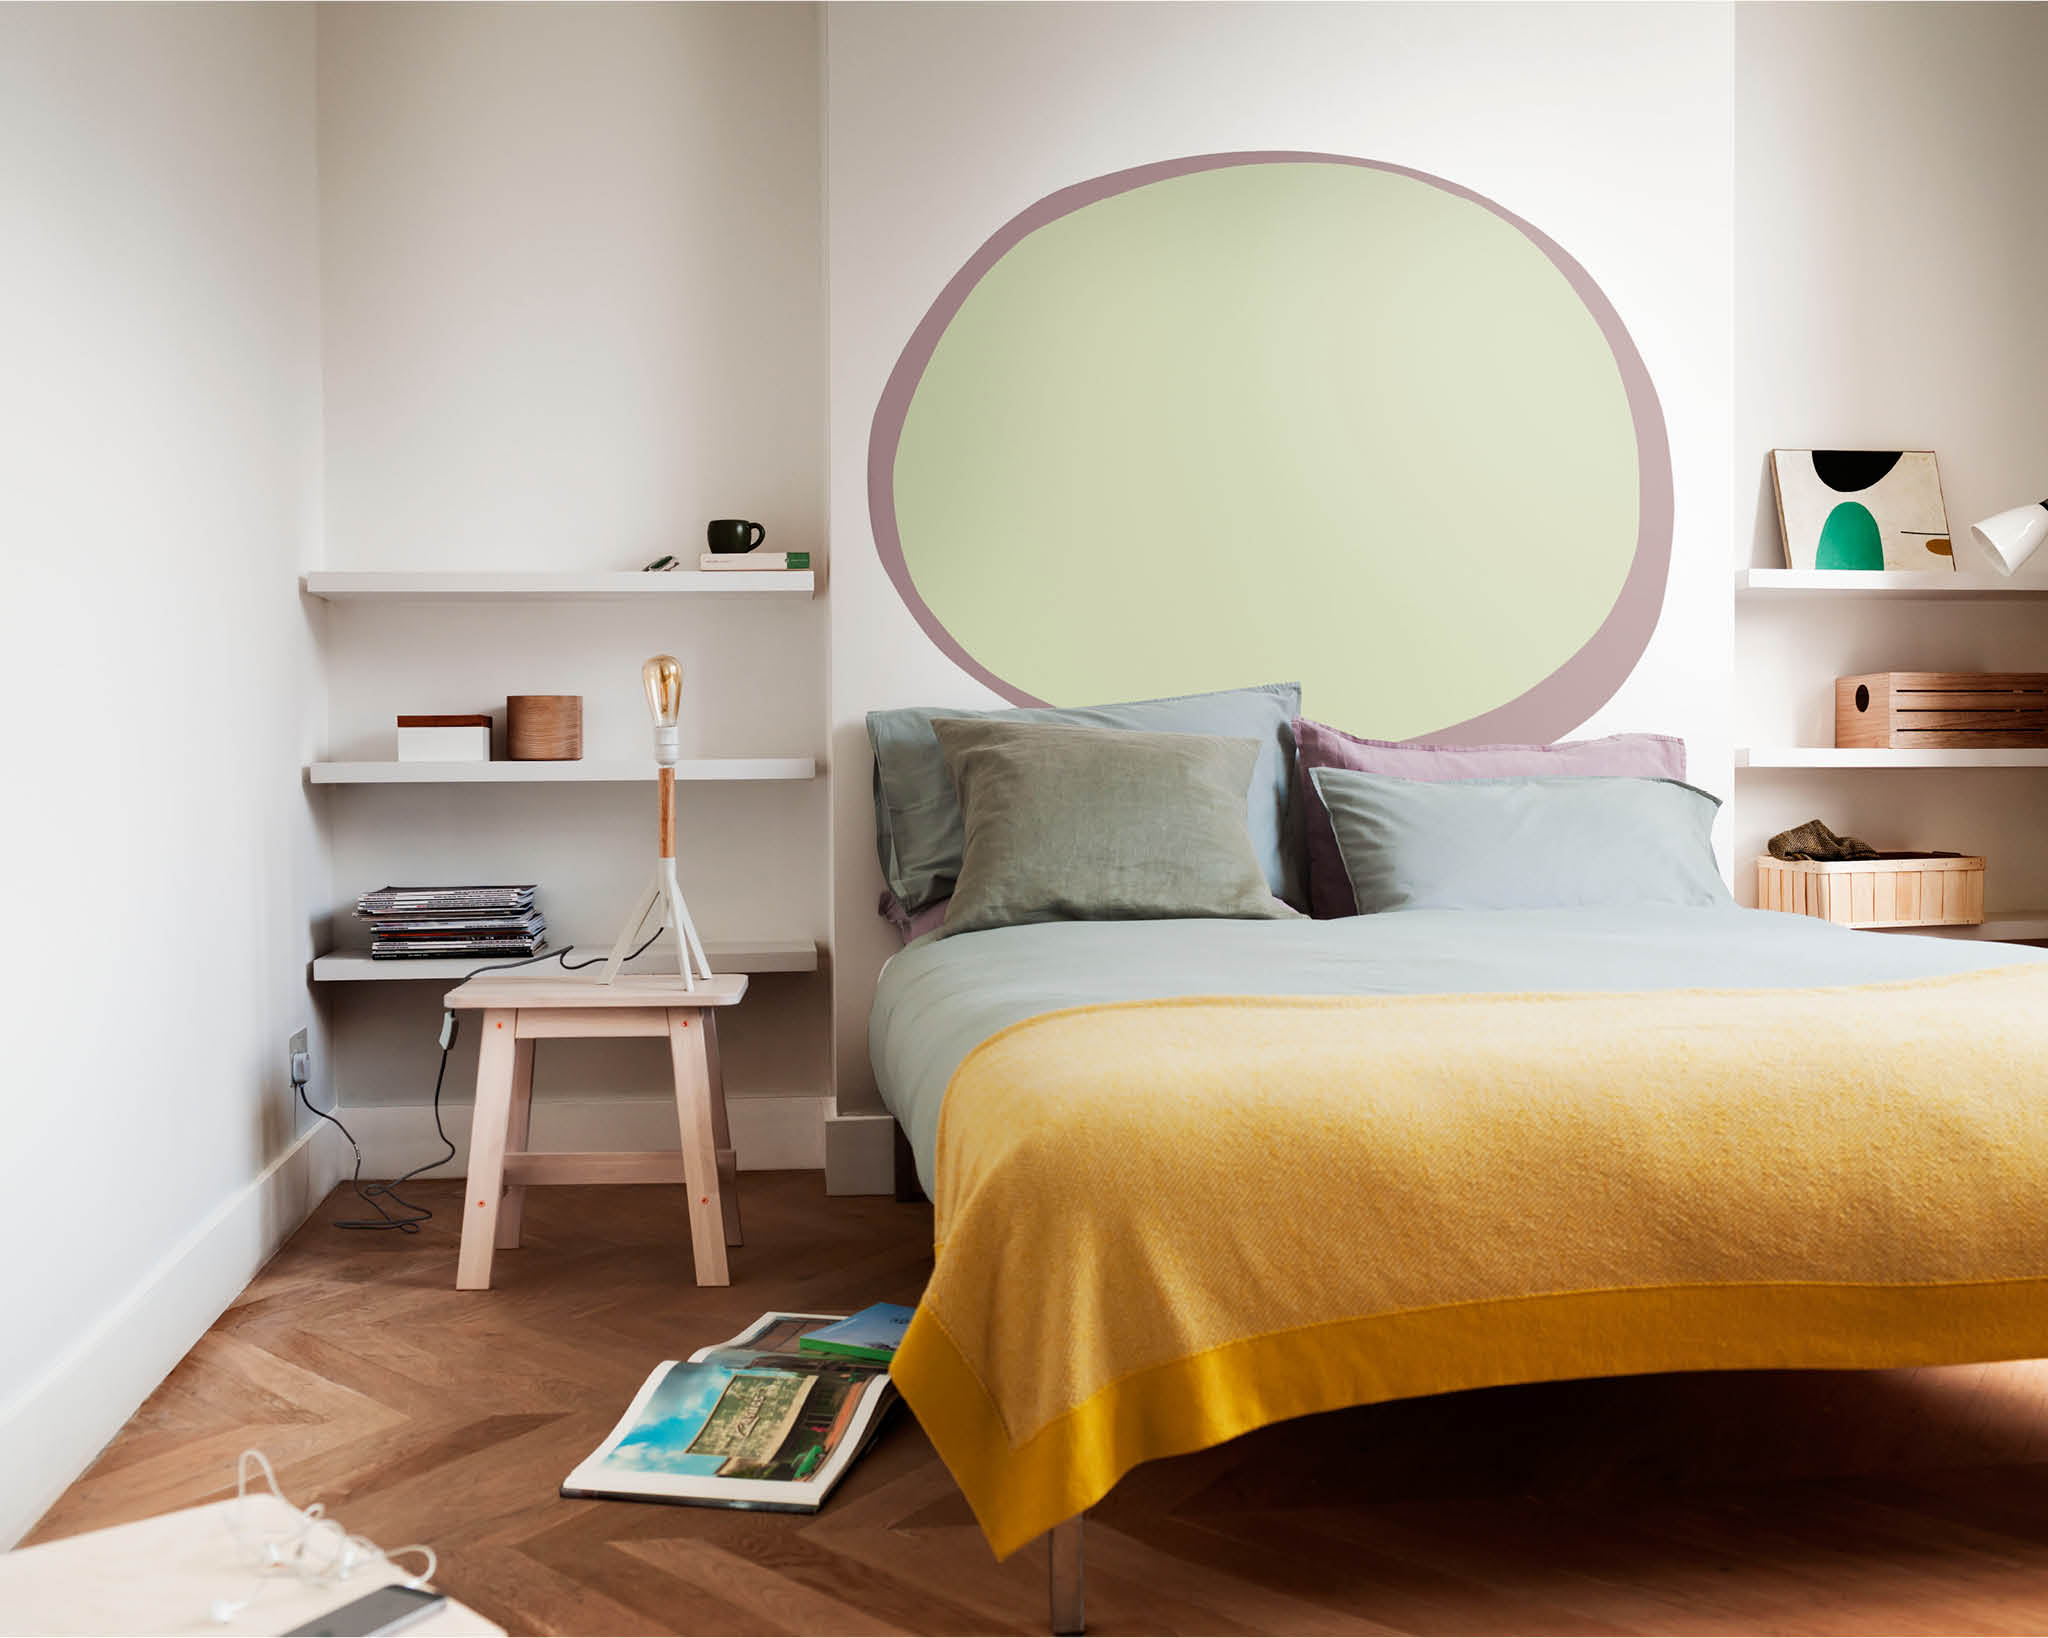 Bedroom with a painted oval on the wall